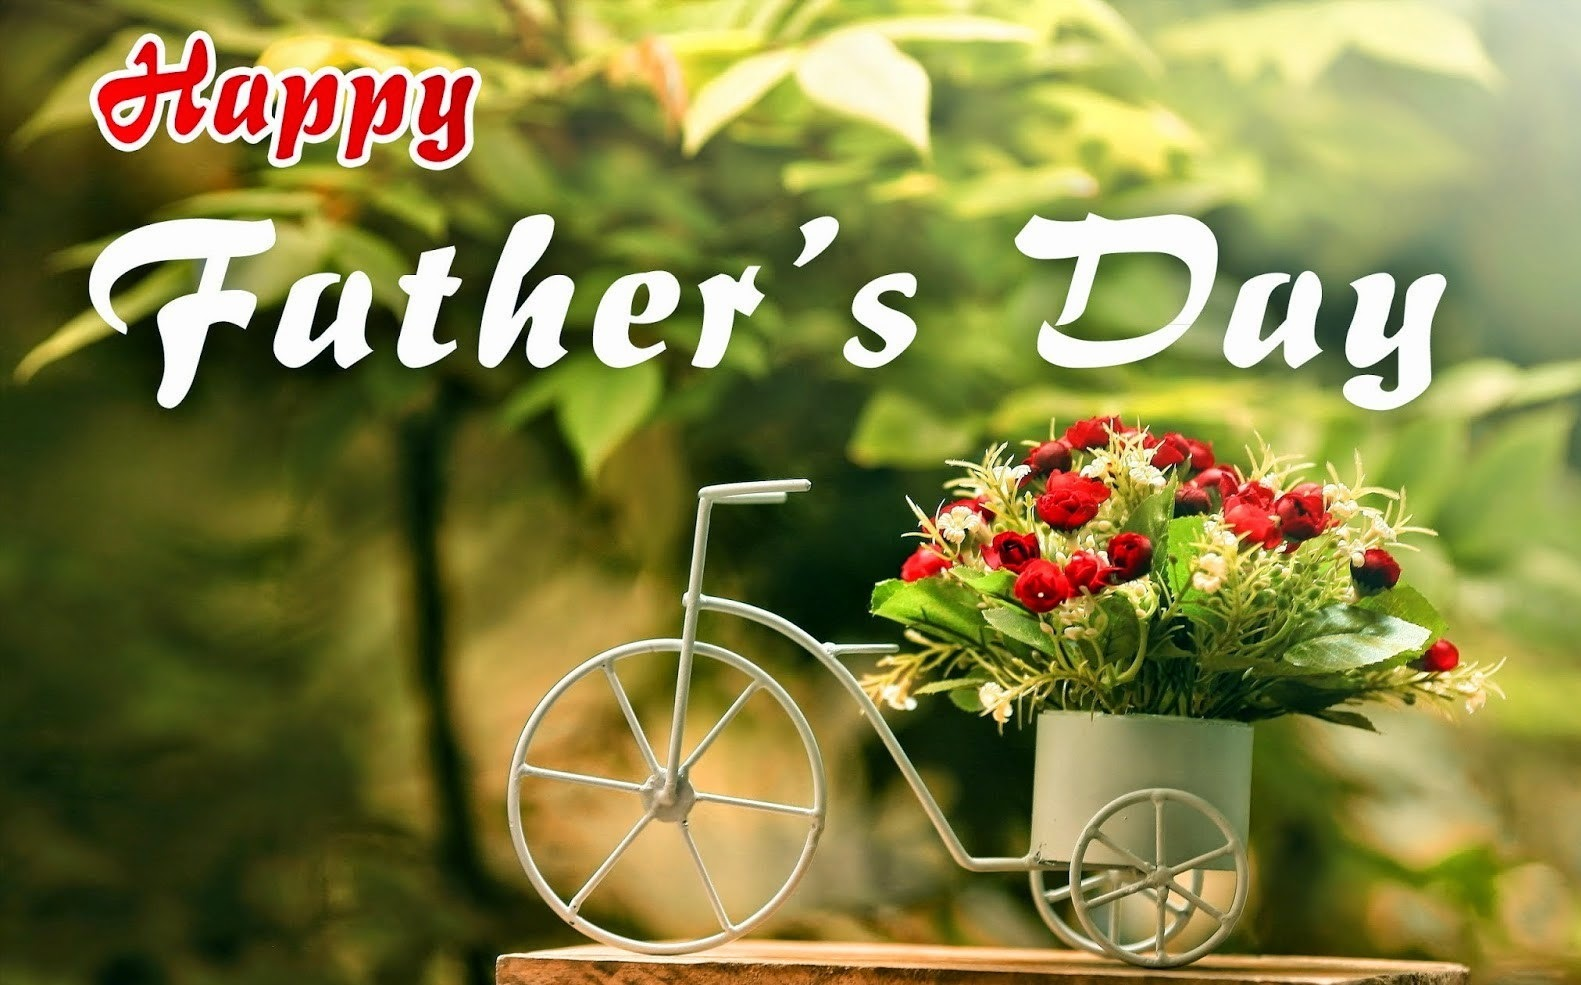 happy fathers day pictures for facebook sharing